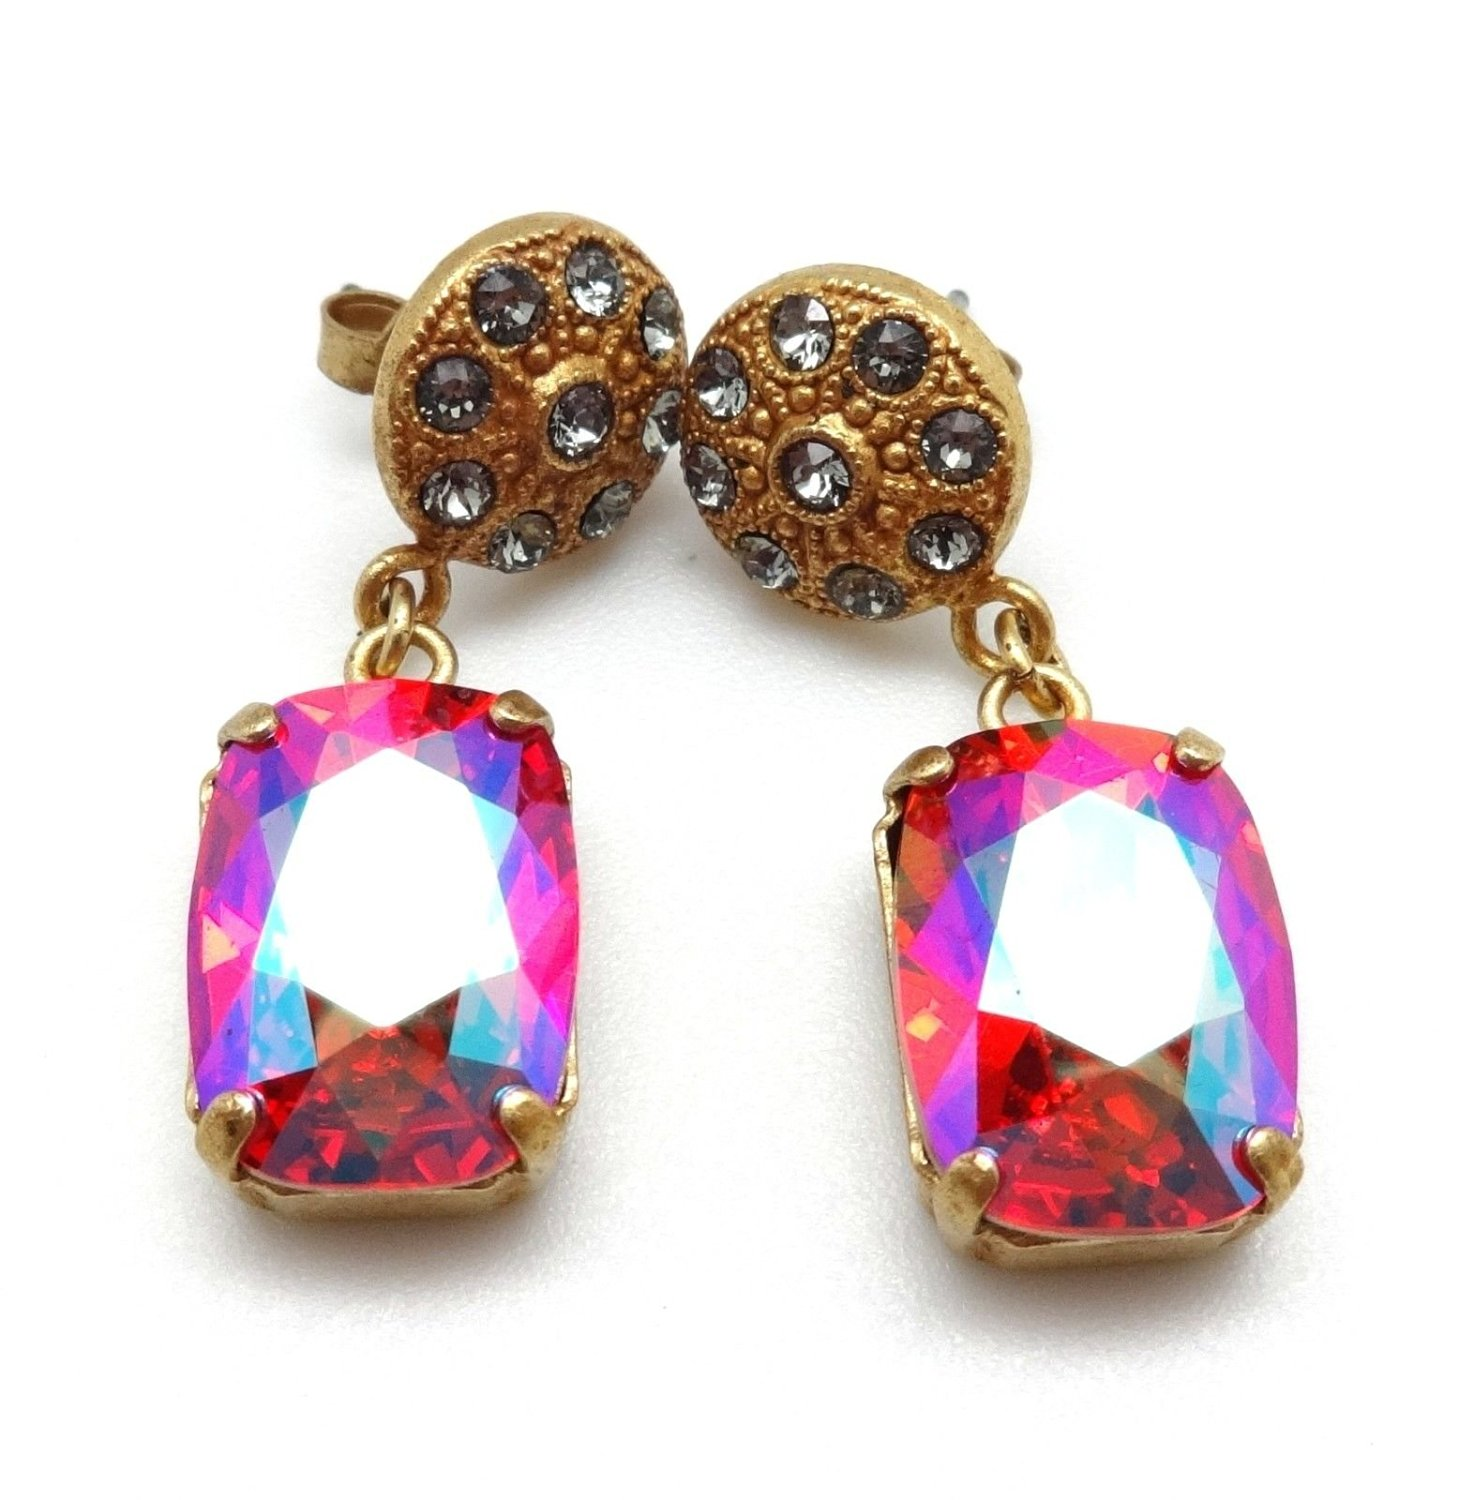 ea8cbe916 Get Quotations · Catherine Popesco Fuchsia AB with Dark Grey Swarovski  Crystal Gold Plated Post Earrings